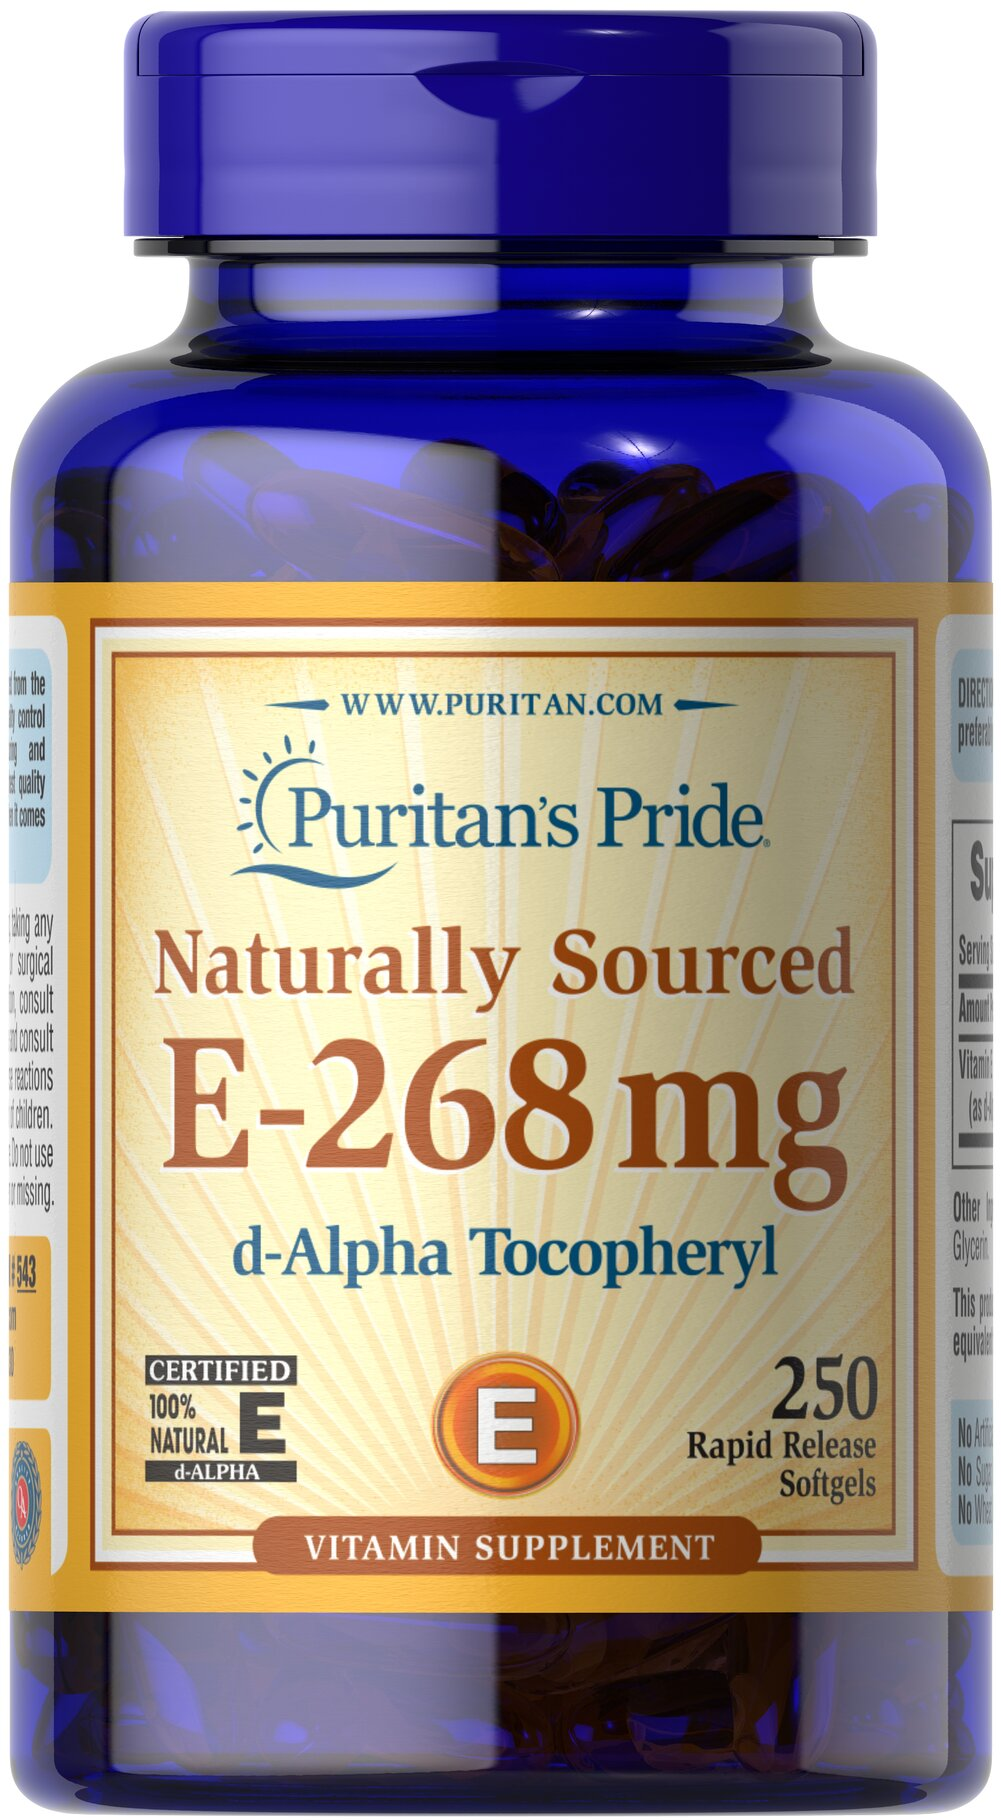 Vitamin E-400 iu 100% Natural <p><b>Vitamin E</b> is a potent antioxidant that helps fight free radicals.** Studies have shown that oxidative stress caused by free radicals may contribute to the premature aging of cells.** Vitamin E also promotes immune function and helps support cardiovascular health.** Our Vitamin E is 100% natural and comes in a convenient to use softgel.</p> 250 Softgels 400 IU $46.99